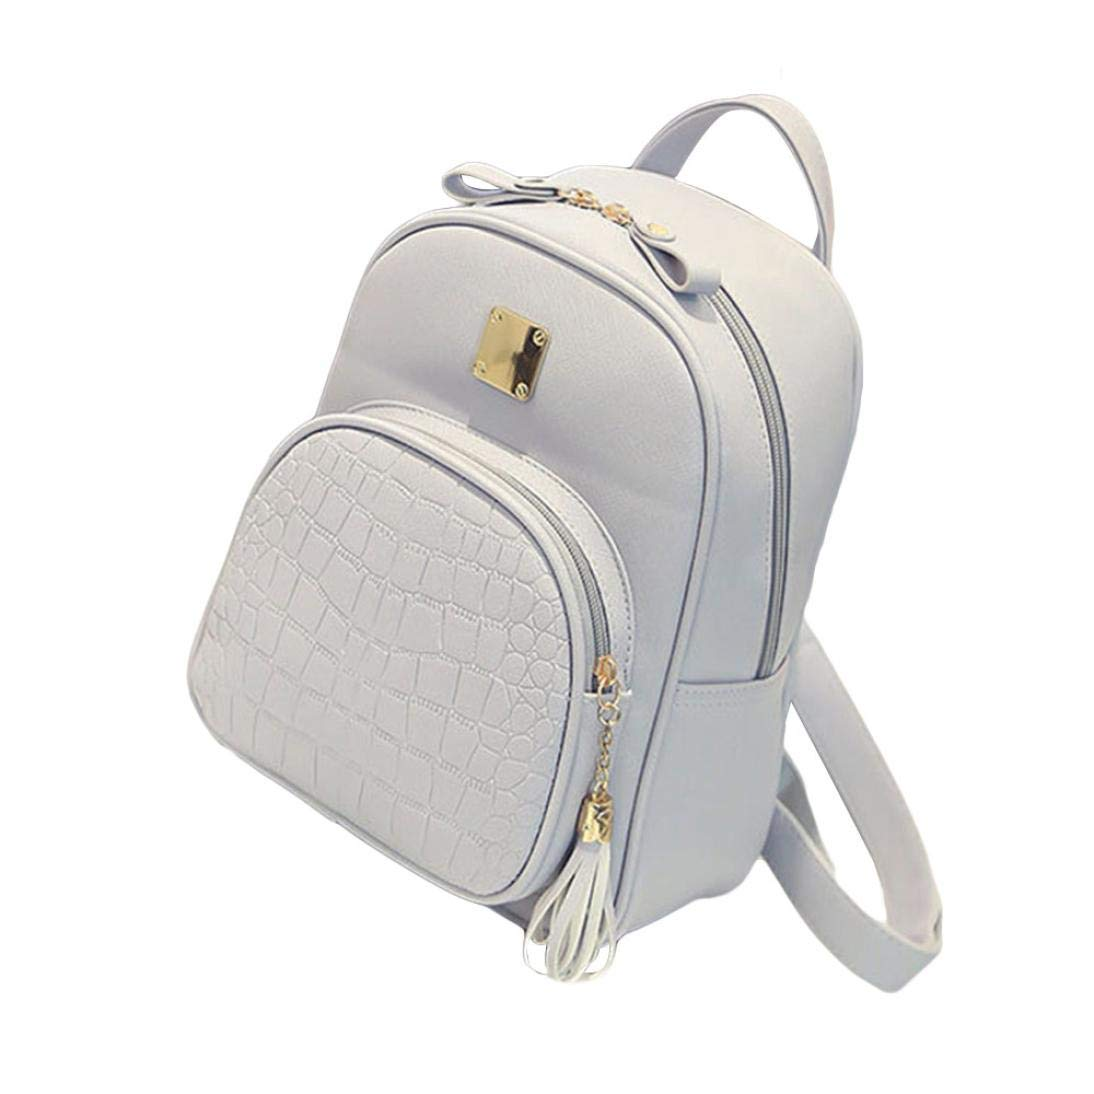 Fashion Women Backpack High Quality Youth Leather Backpacks For Teenage Girls Female School Shoulder Bag Casual Style Wholesale To Rank First Among Similar Products Backpacks Women's Bags